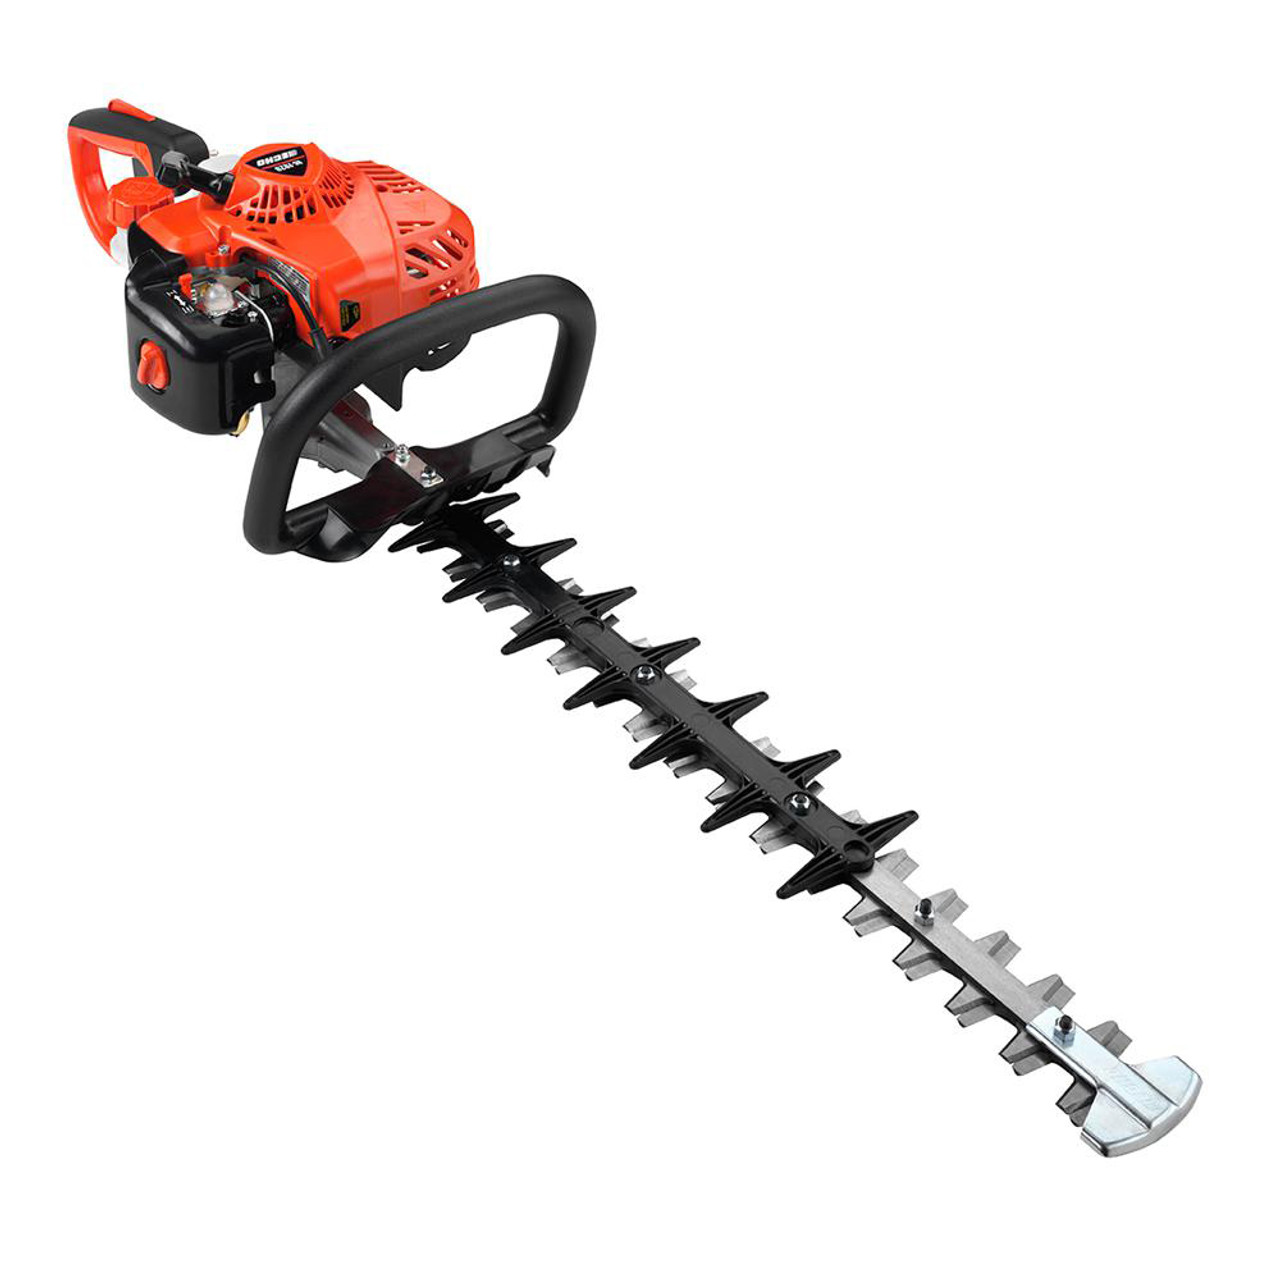 """ECHO HC-2020 21.1cc Hedge Trimmer w/ 20"""" Double-Sided Blades Image 5"""